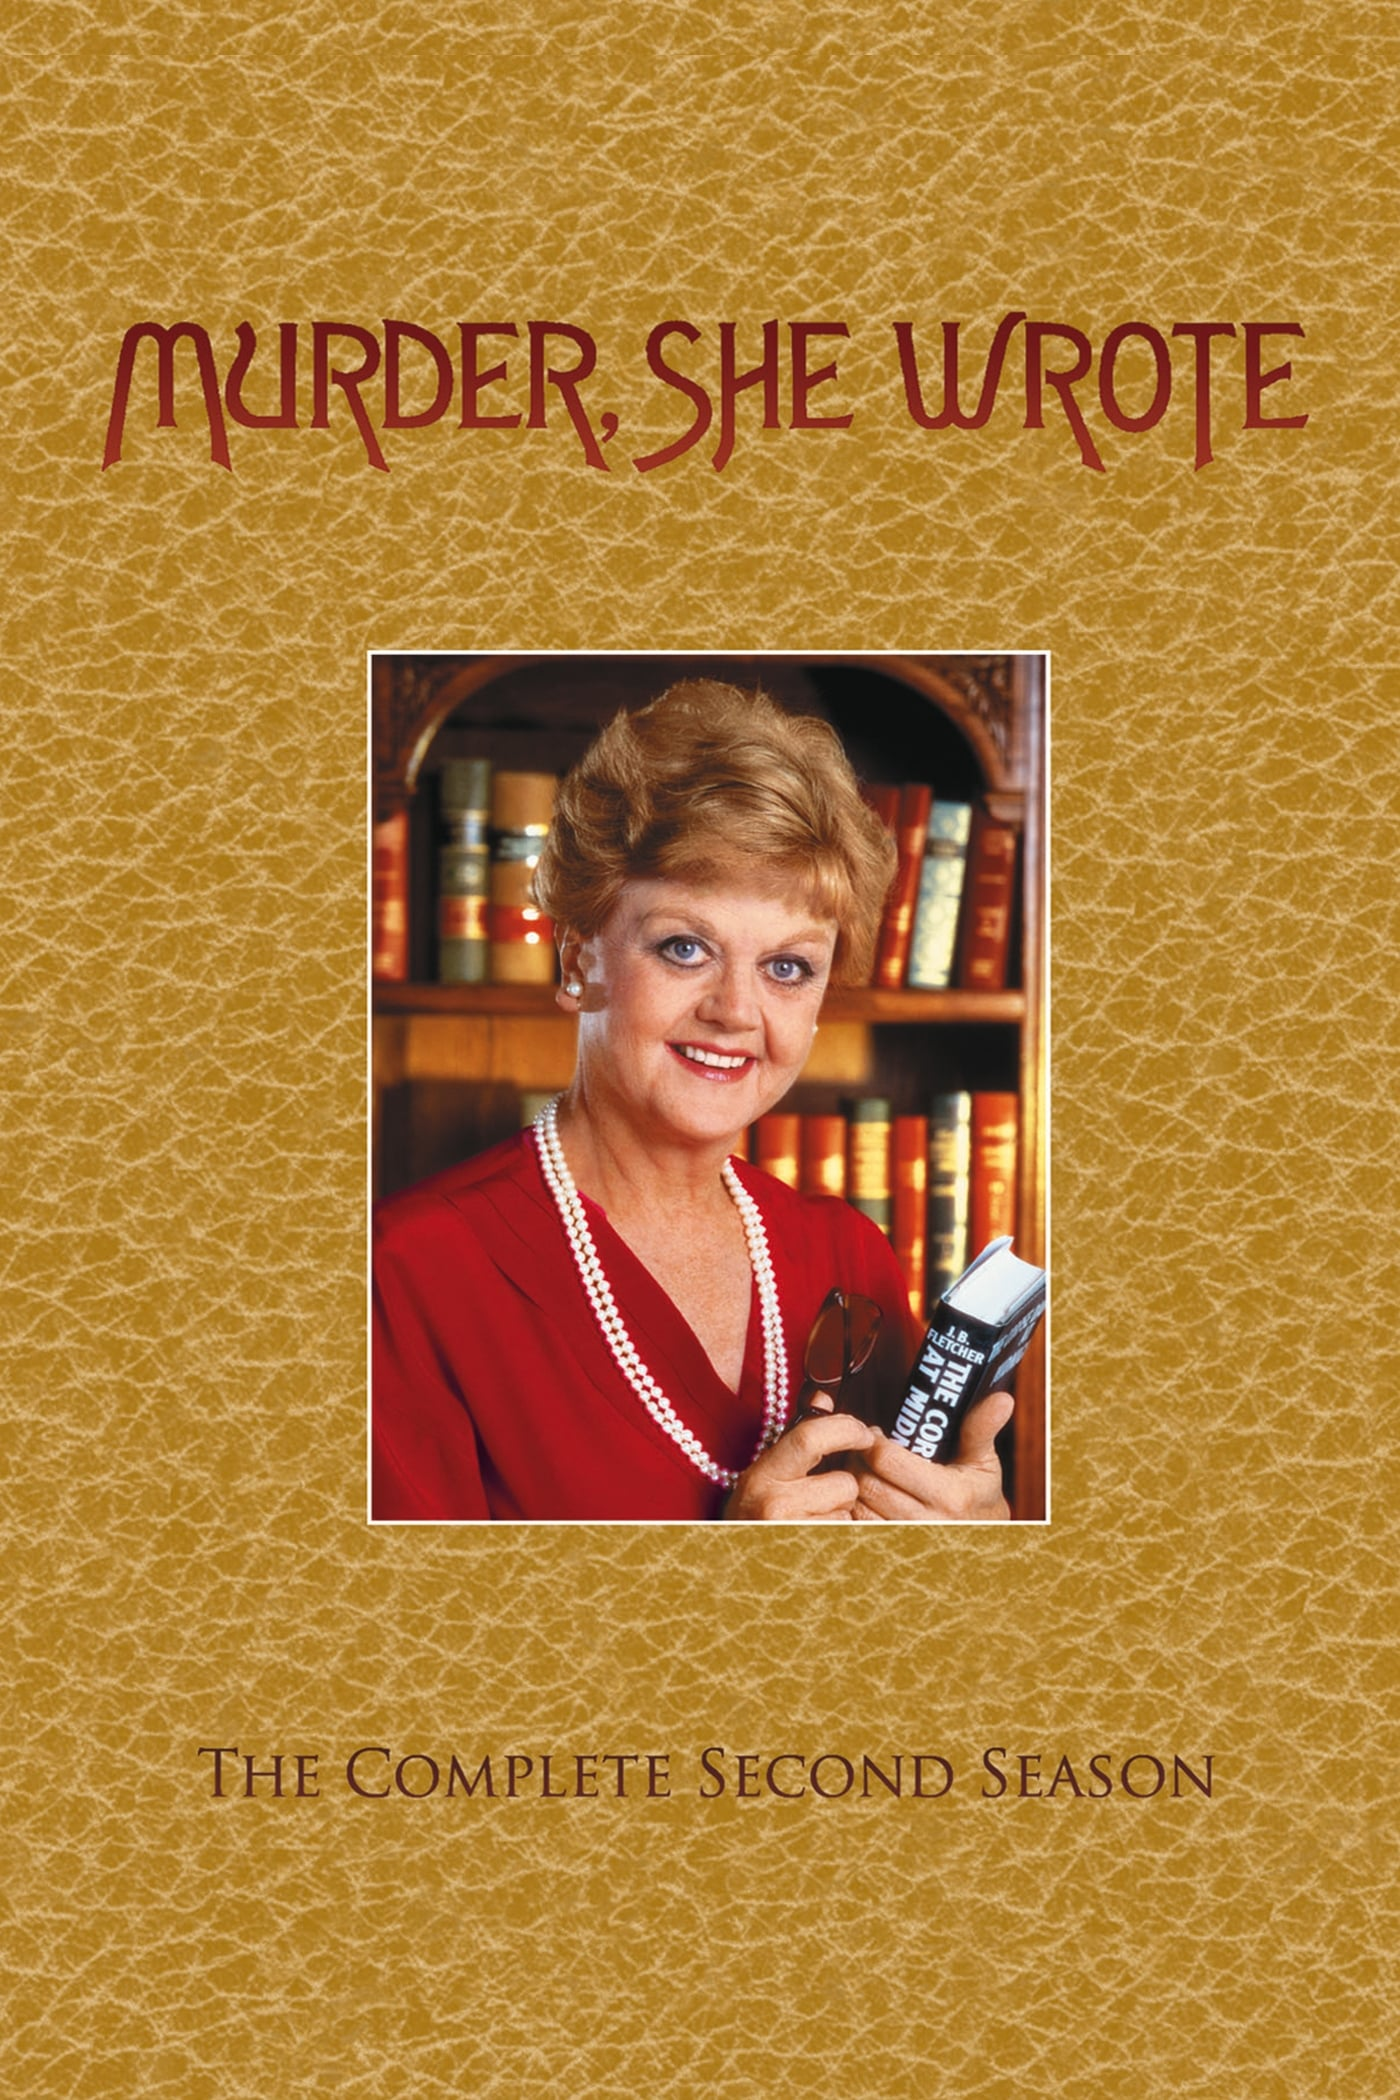 Murder, She Wrote Season 2